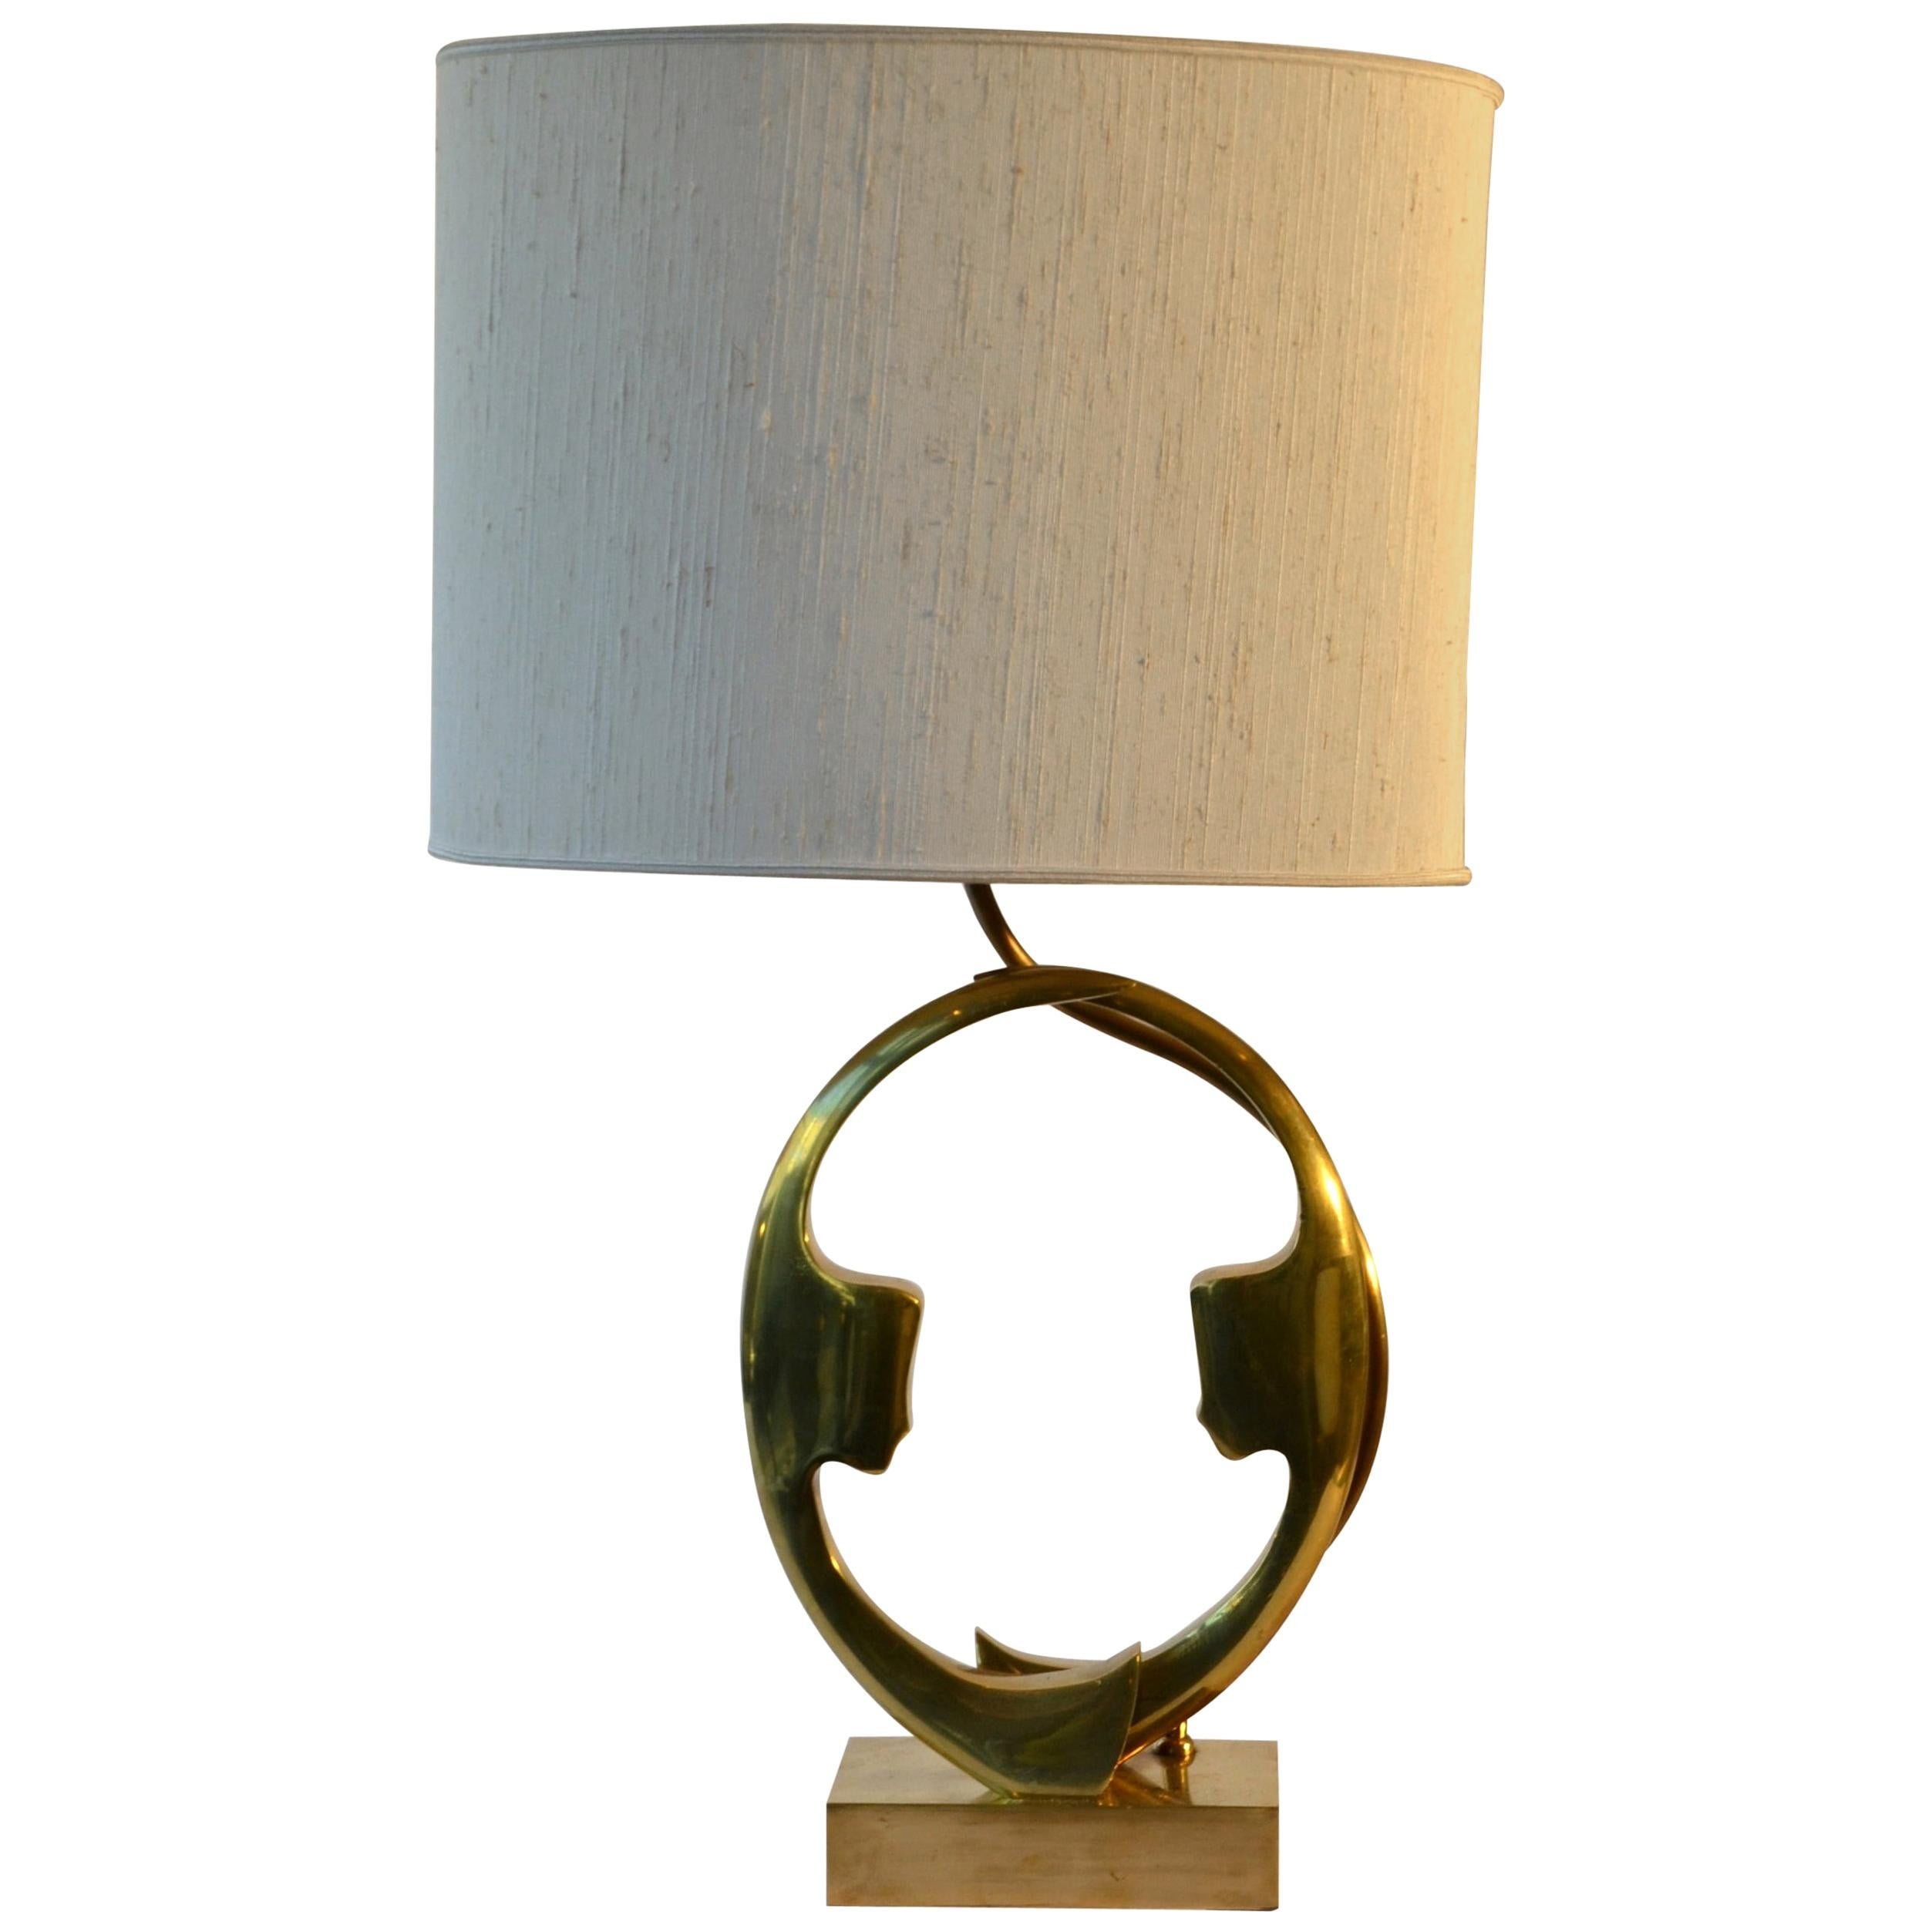 Bronze Willy Daro Table Lamp with Silhouette Faces 1970s Belgium